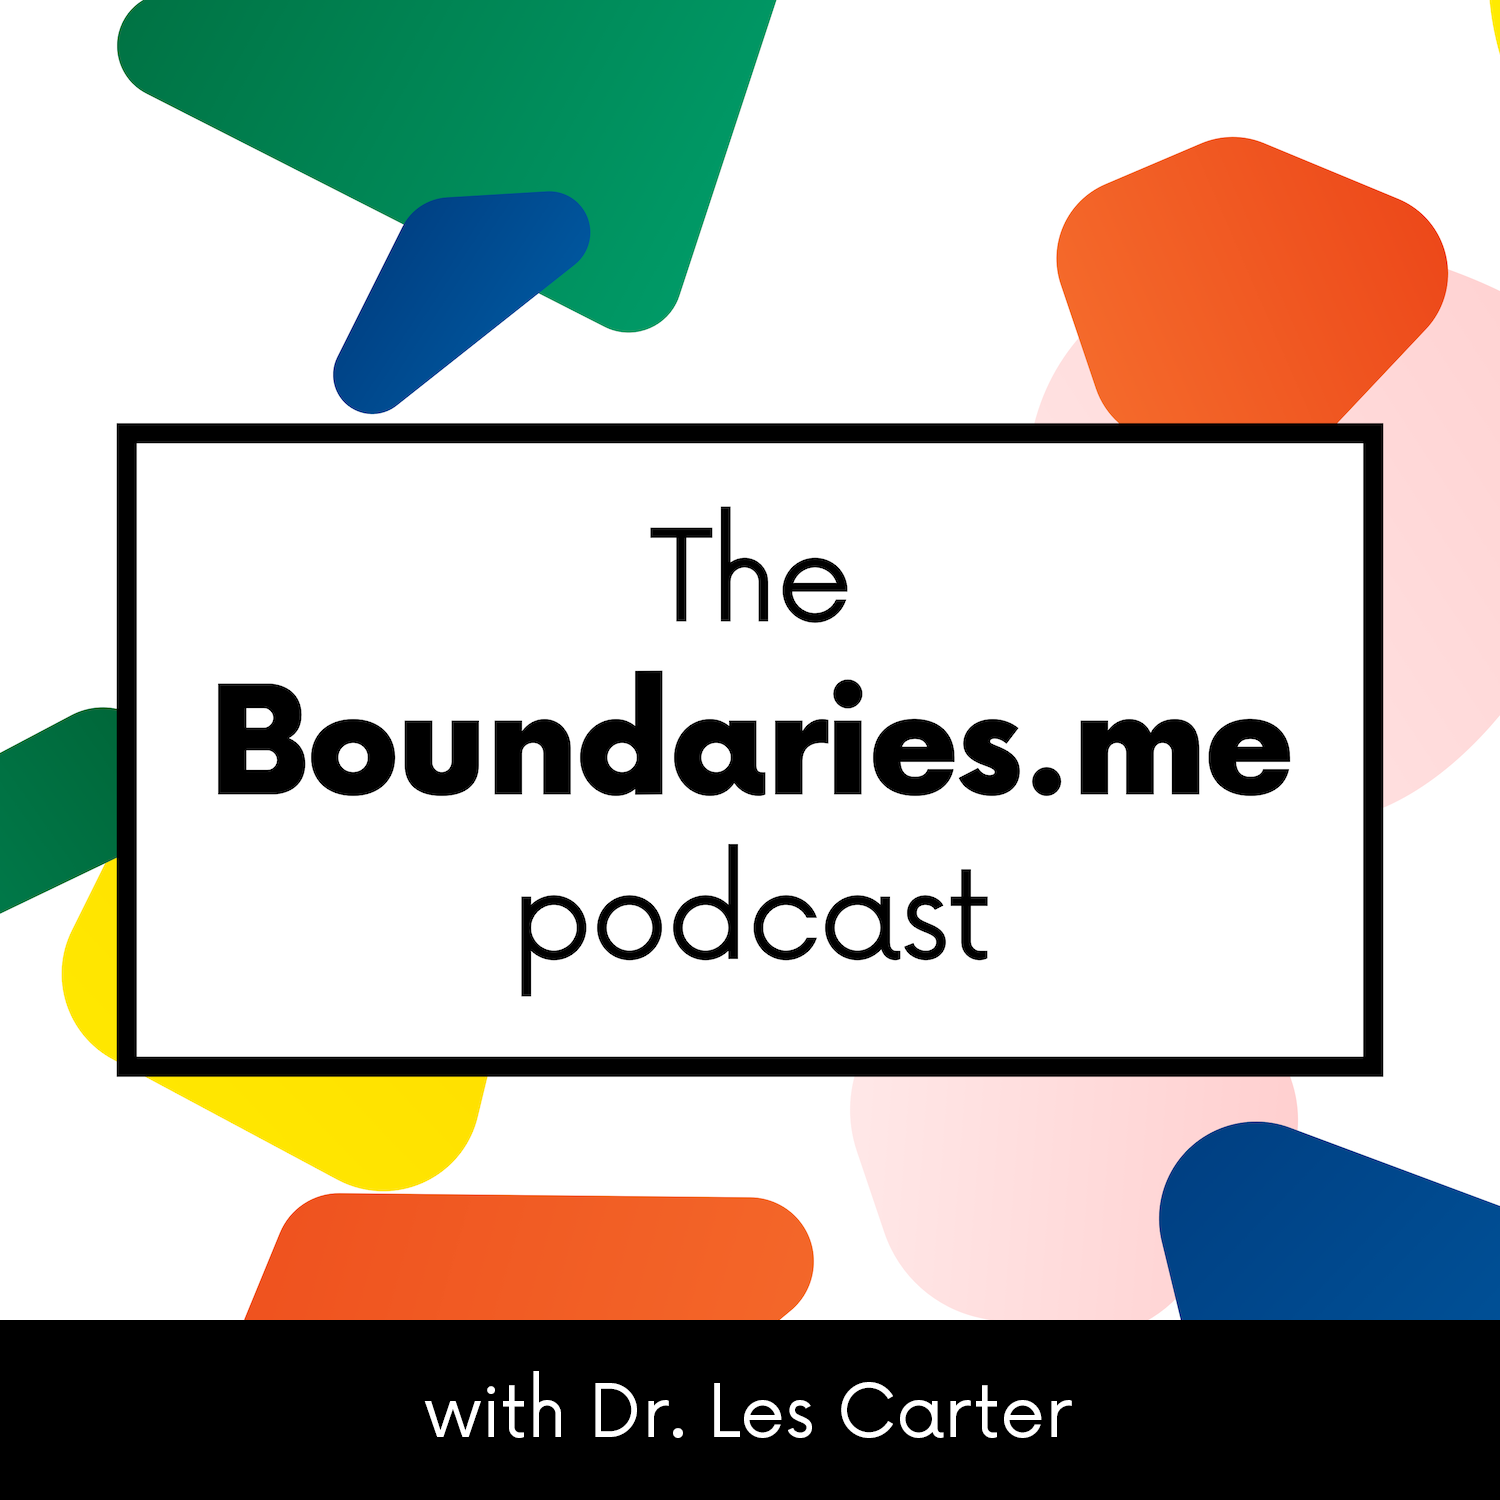 Episode 15 with Dr. Les Carter - Who are you going to be?